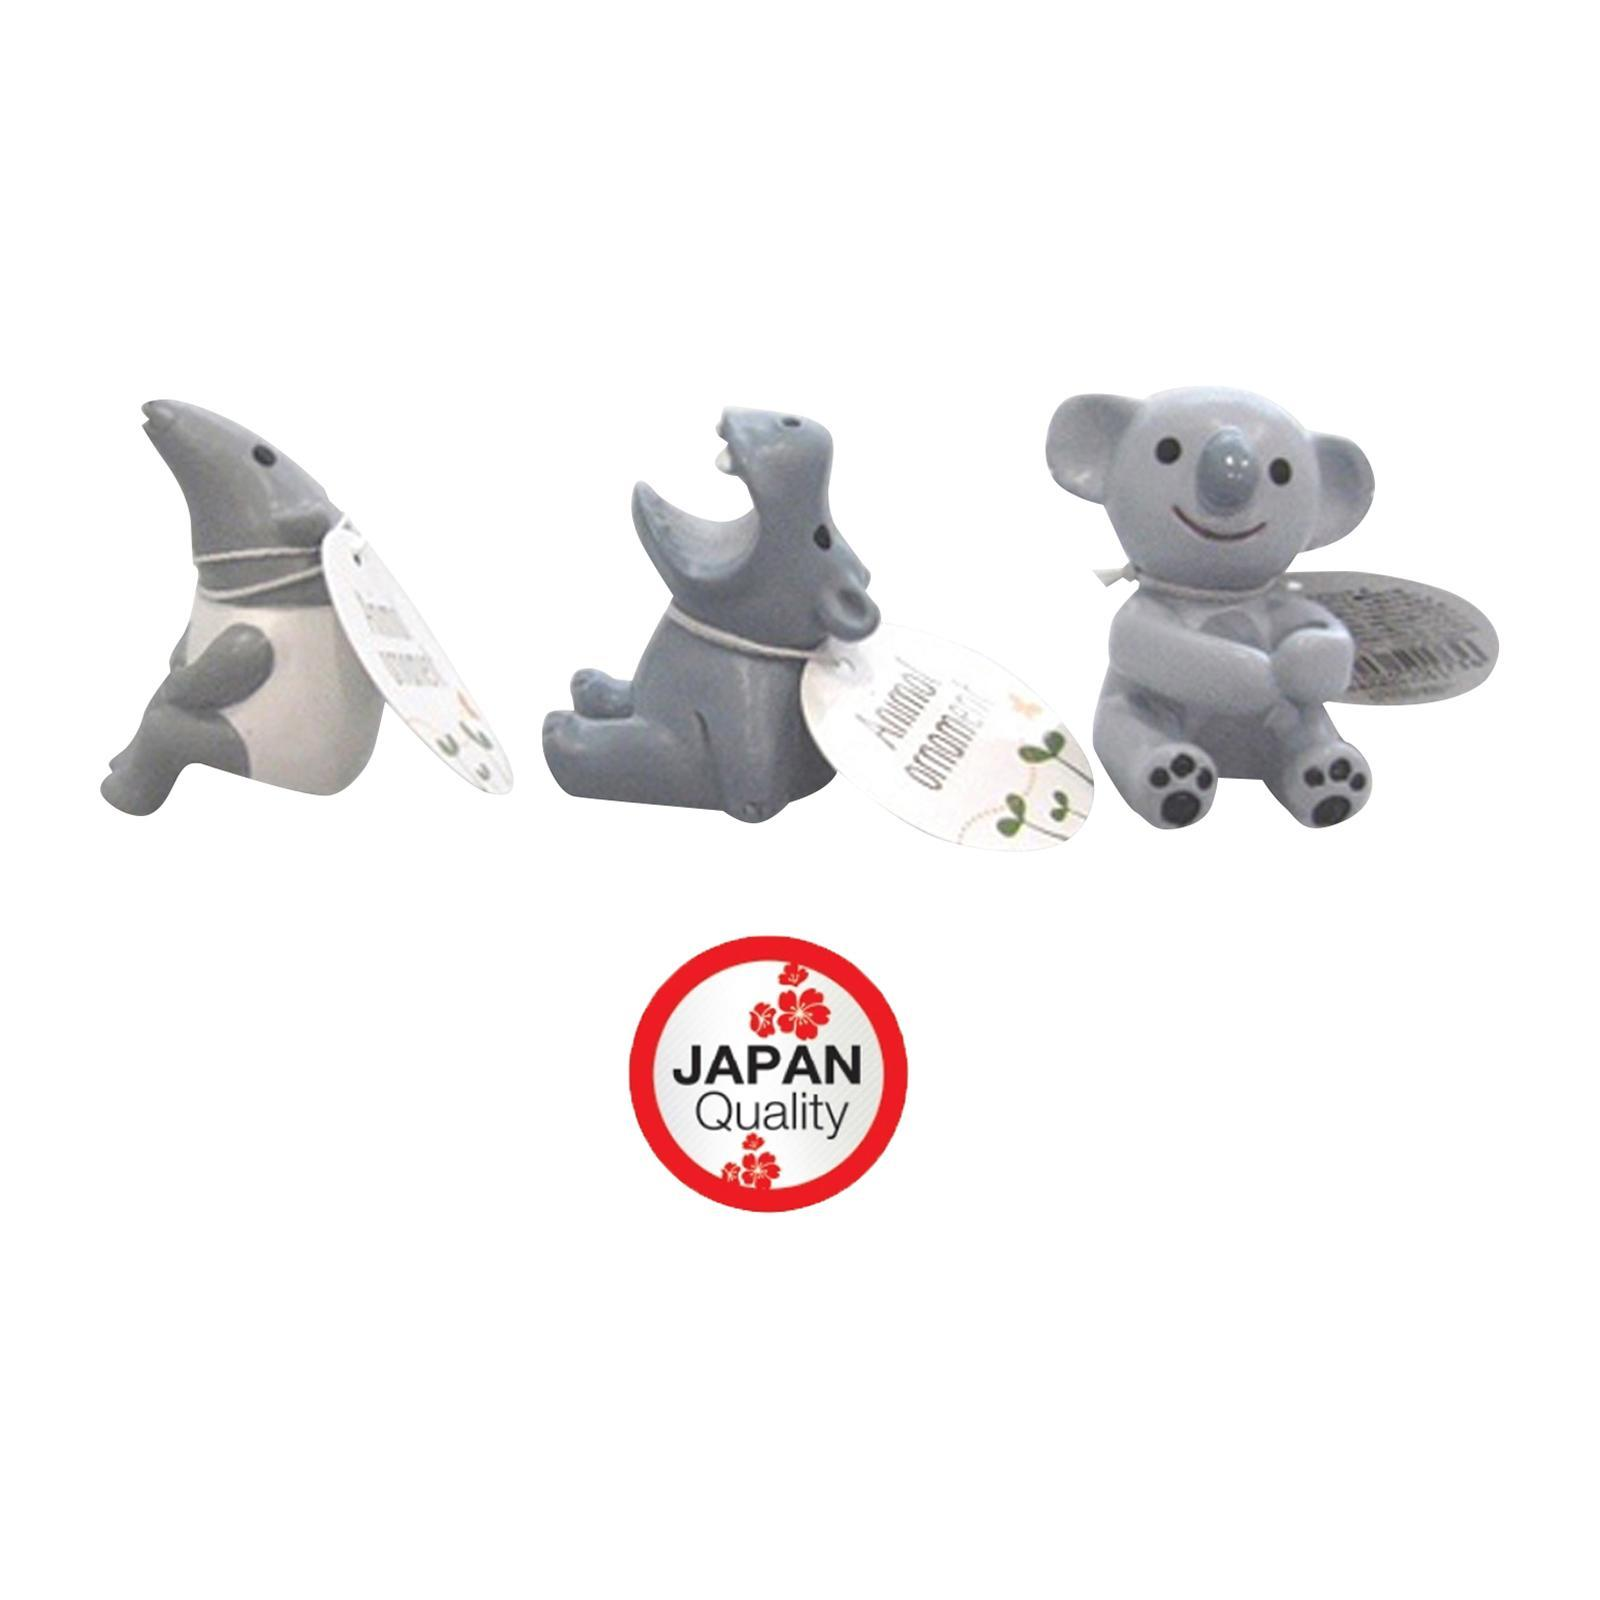 Nomi - Lifestyle Animal Mascot - Stationery Stand And Cool Mini Doll.